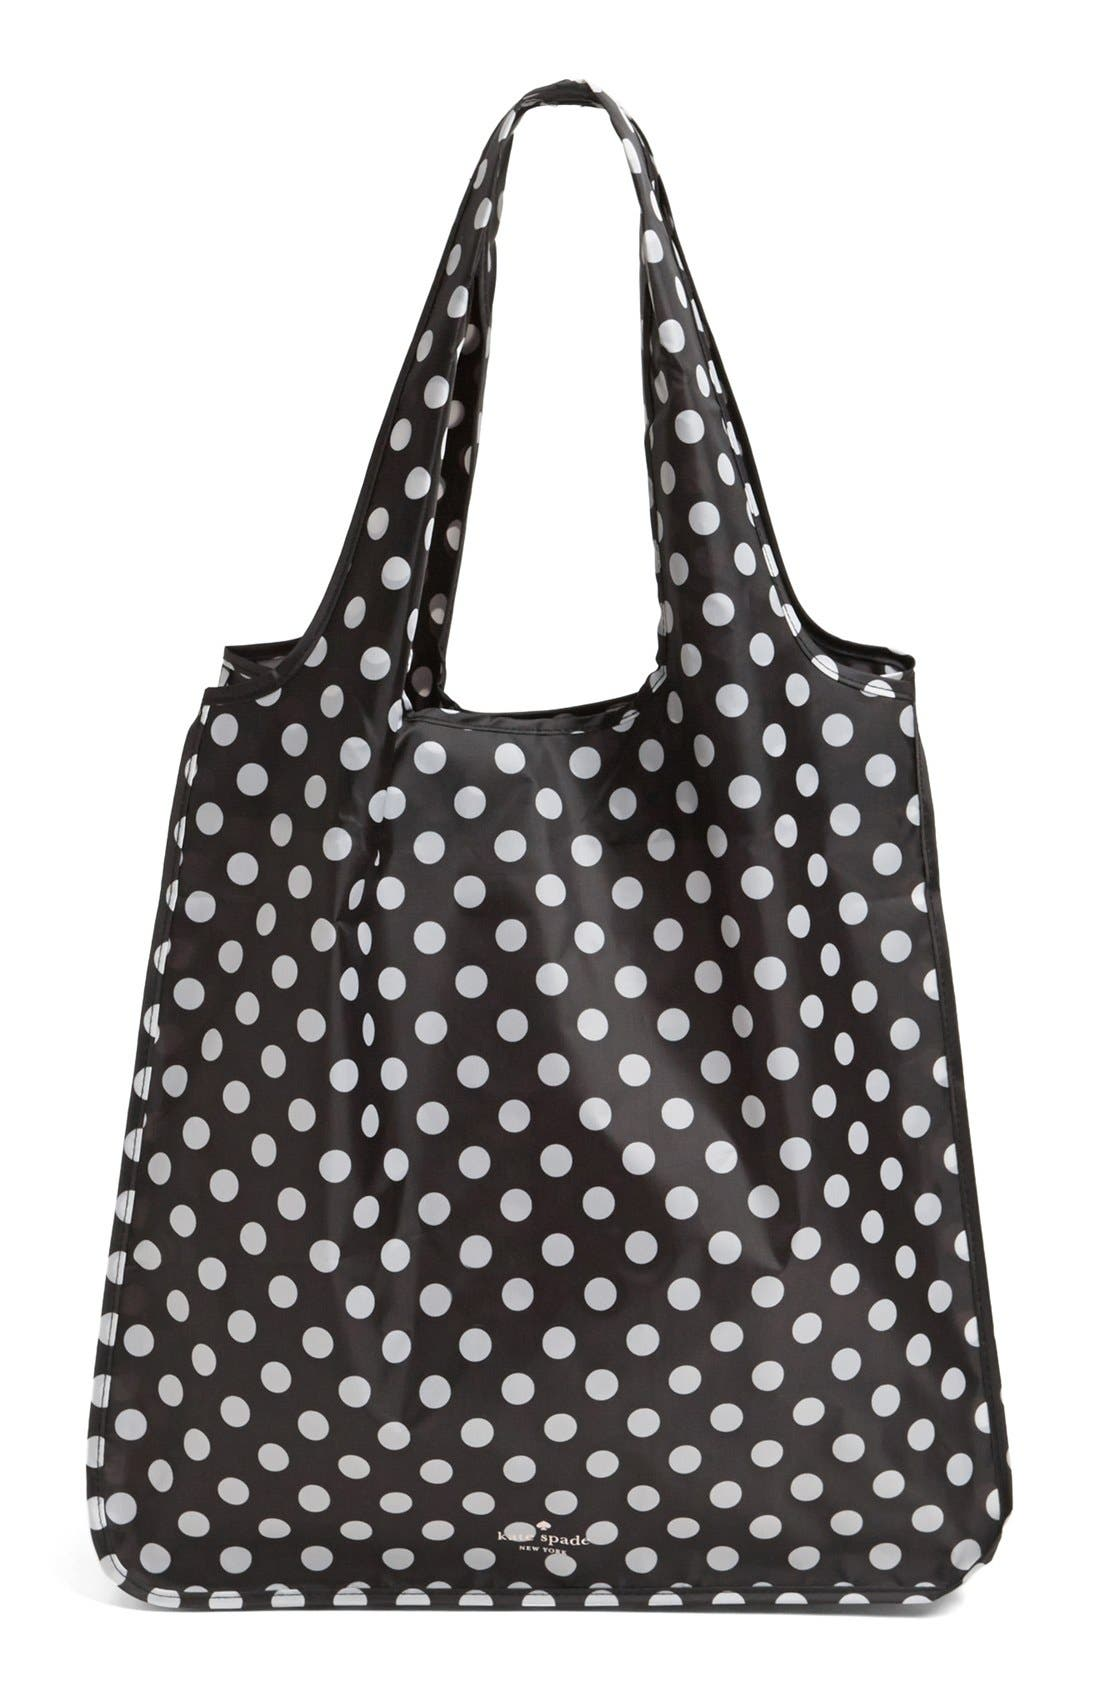 Alternate Image 1 Selected - kate spade new york 'polka dot' reusable shopping tote